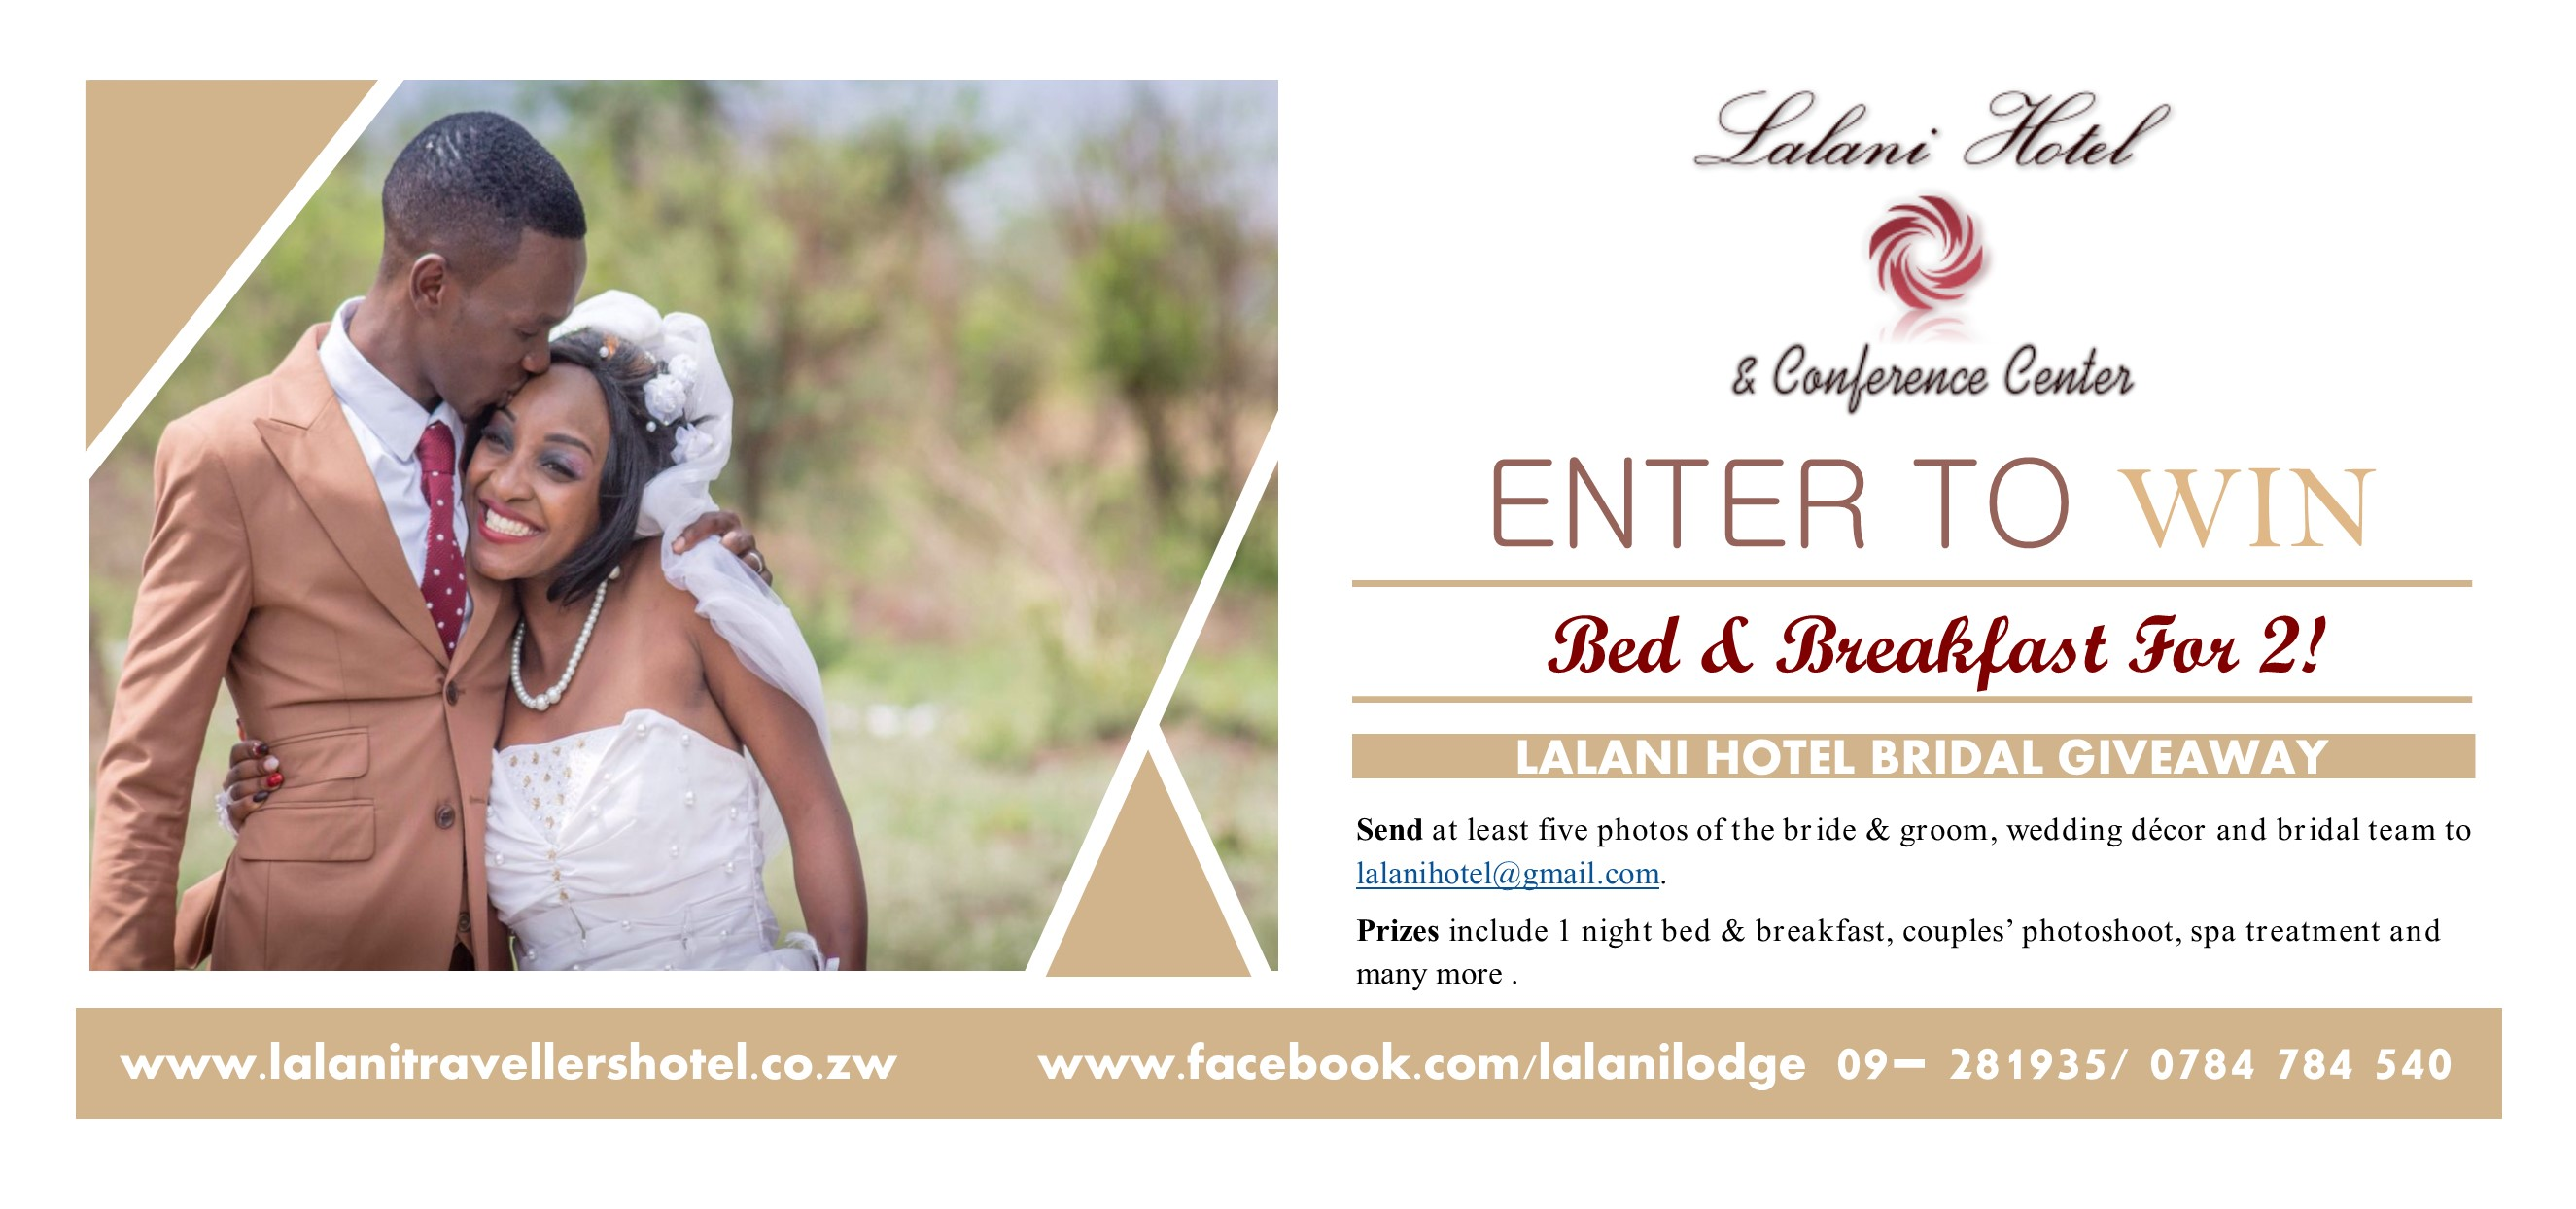 Lalani Hotel and Conference Centre Wedding Competition